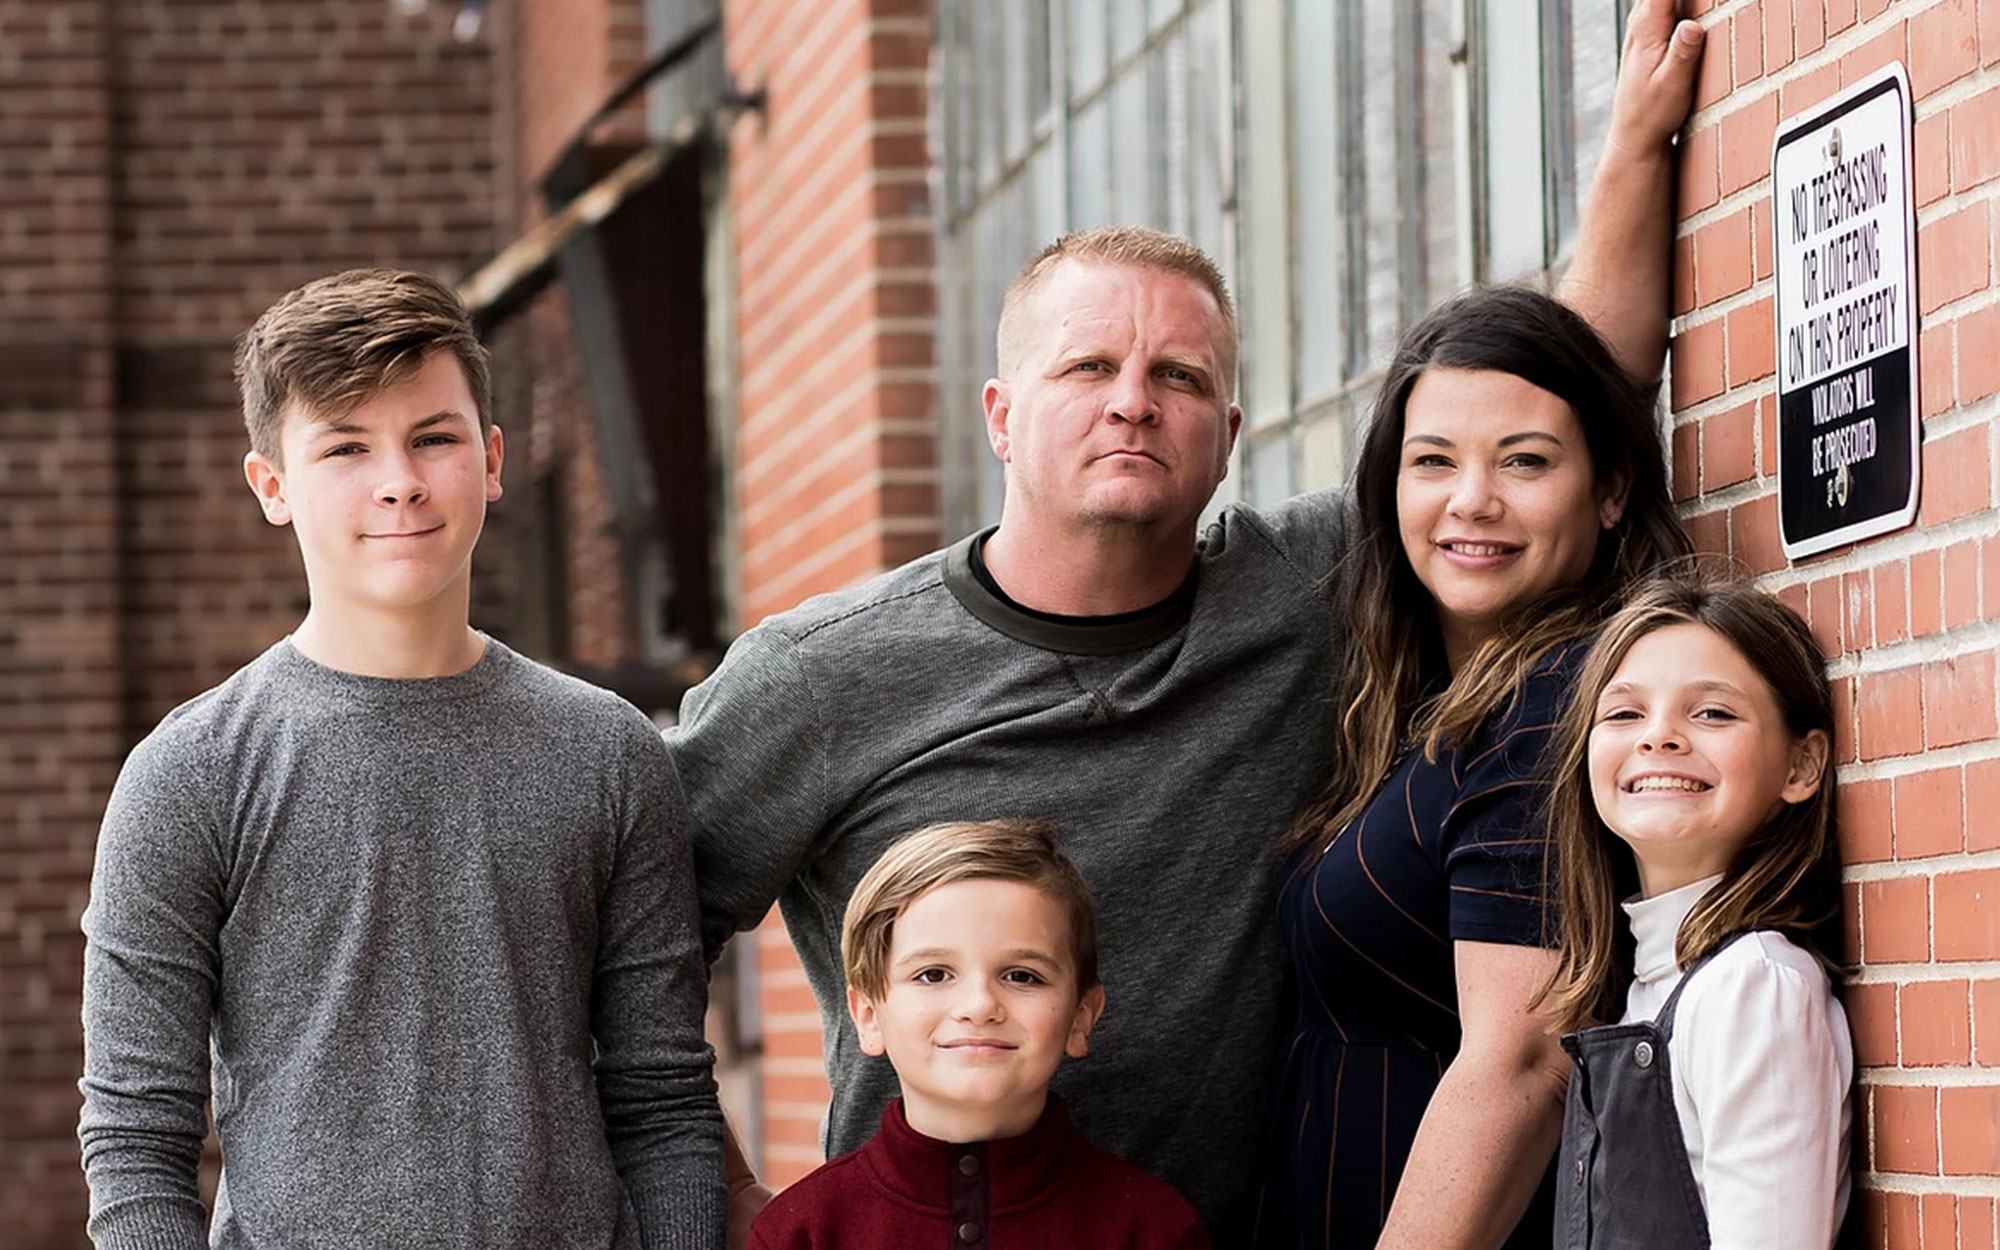 Law N' Order owner's family photo